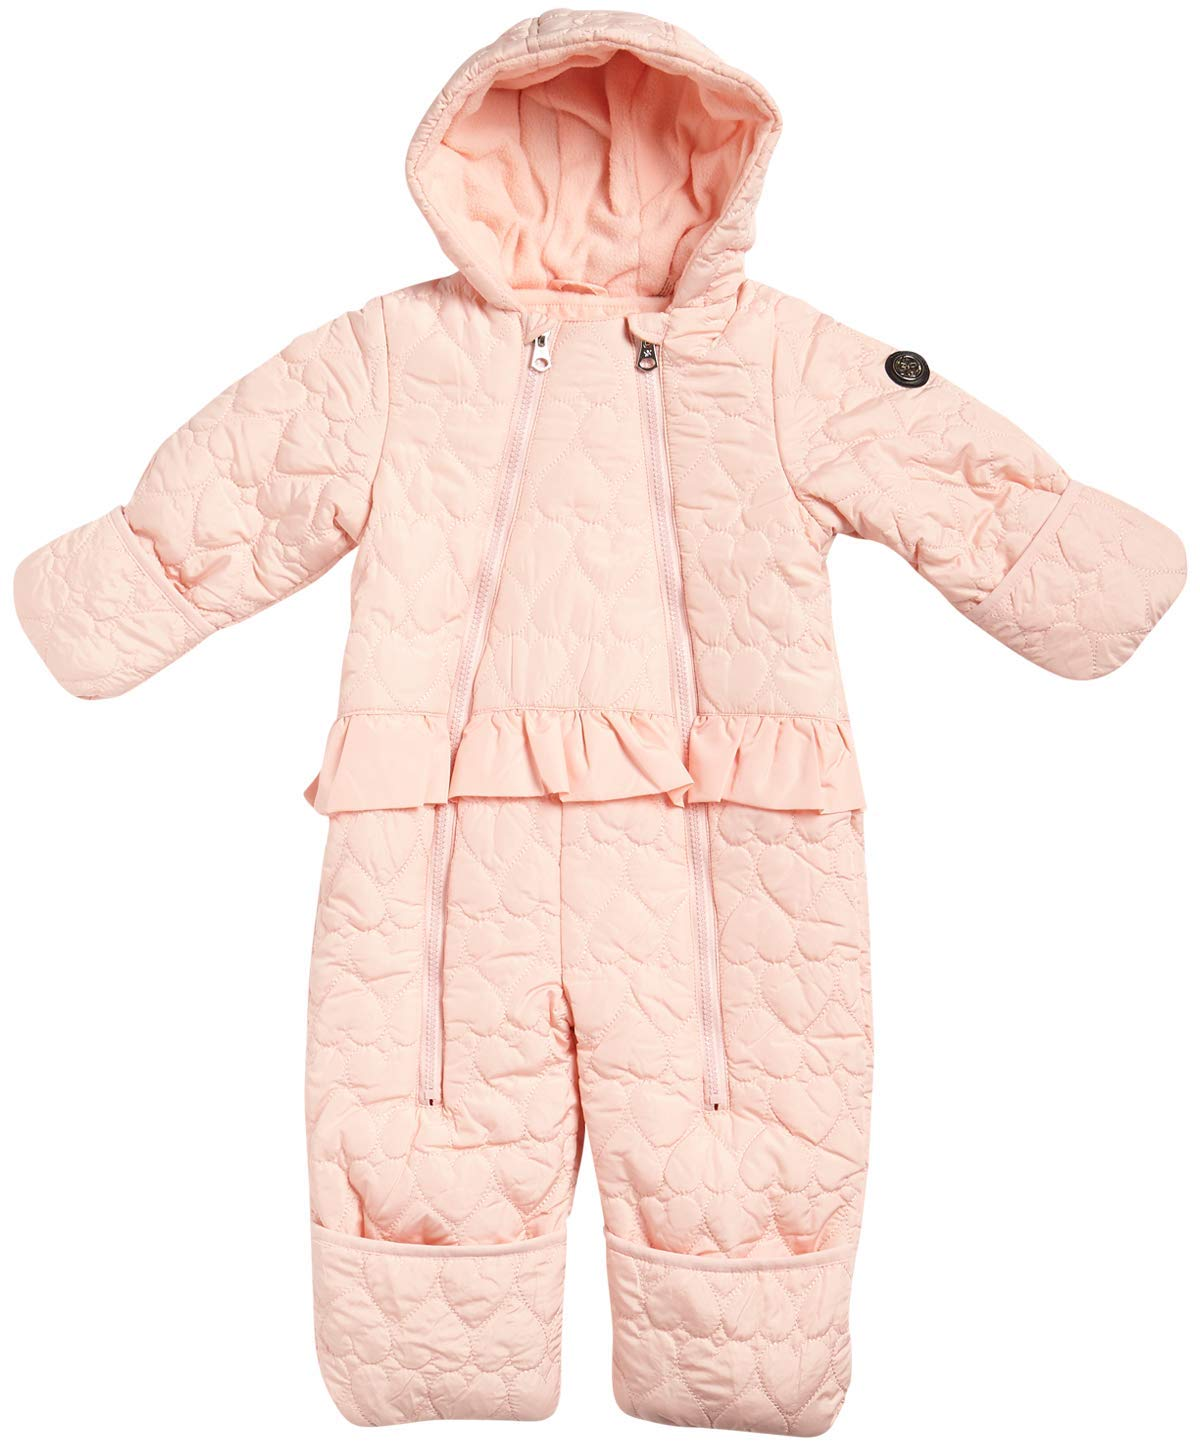 Jessica Simpson Baby Girls Hooded Heart Snowsuit Pram, Size 12 Months, Blush' by Jessica Simpson